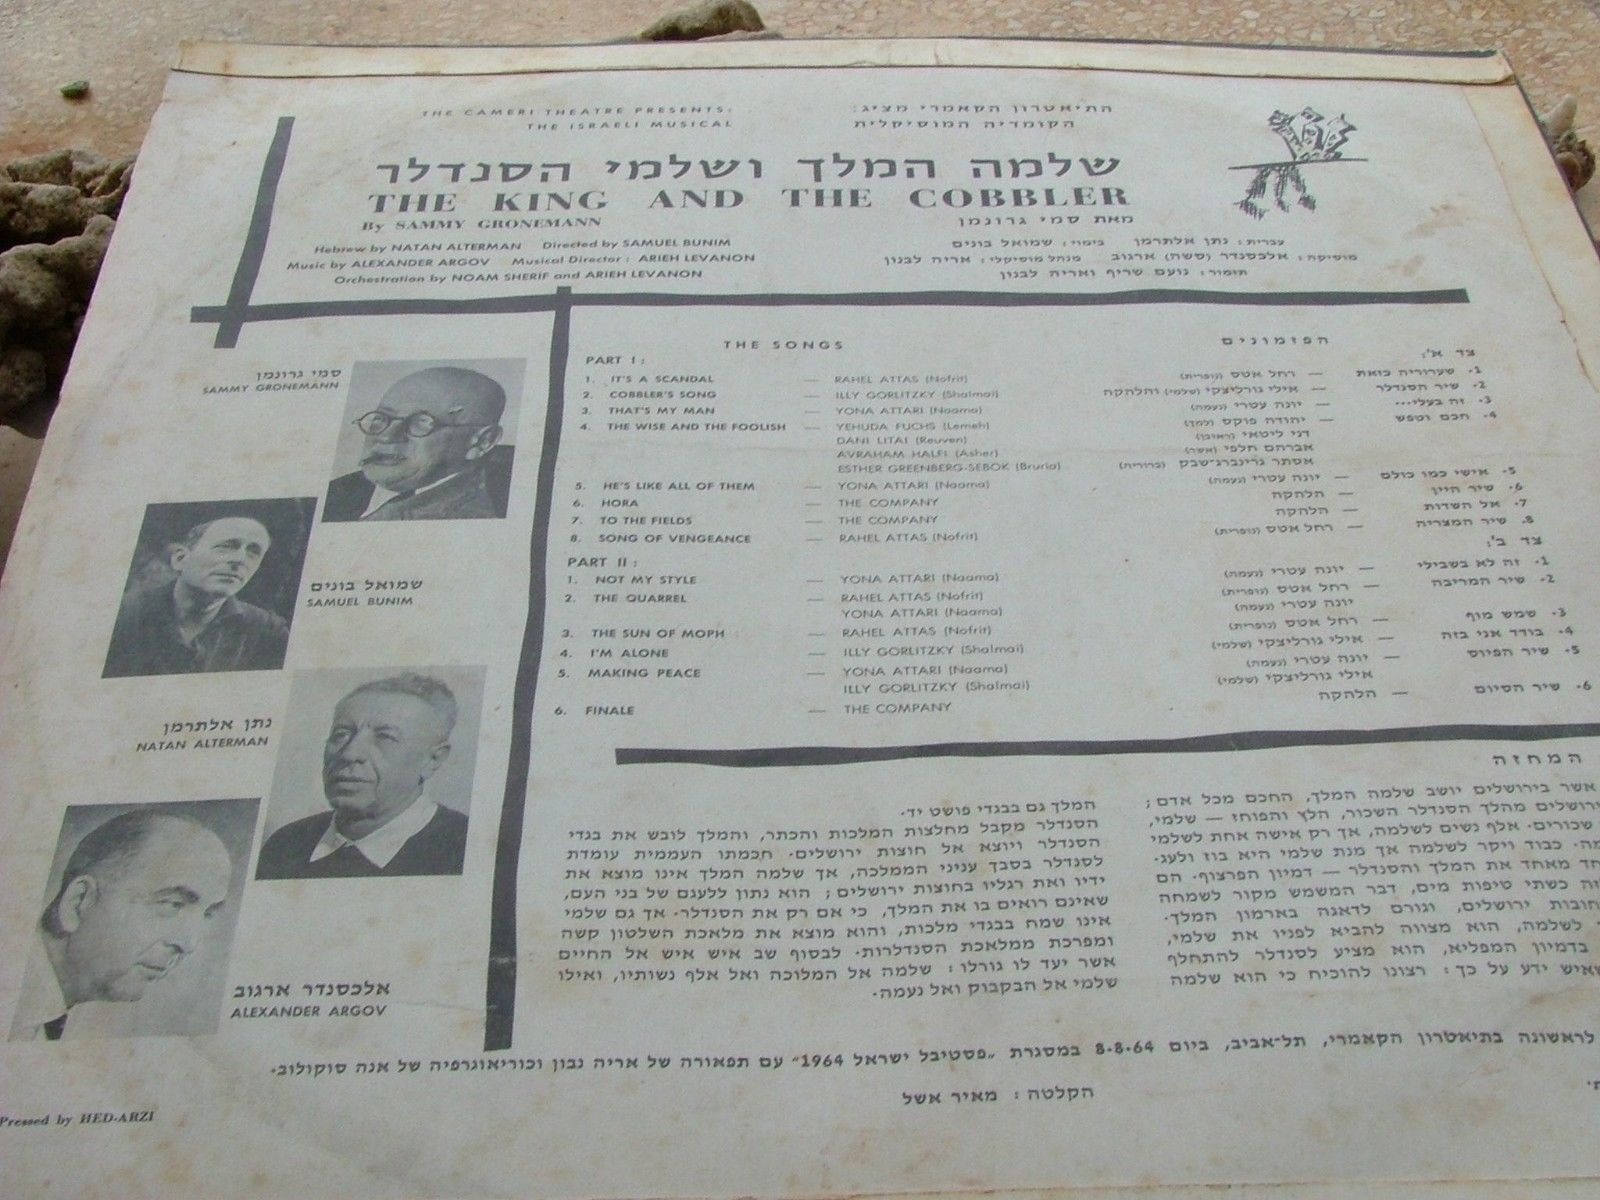 The King And The Cobbler OST By Sammy Gronemann RARE HEBRE ISRAEL RECORD image 2